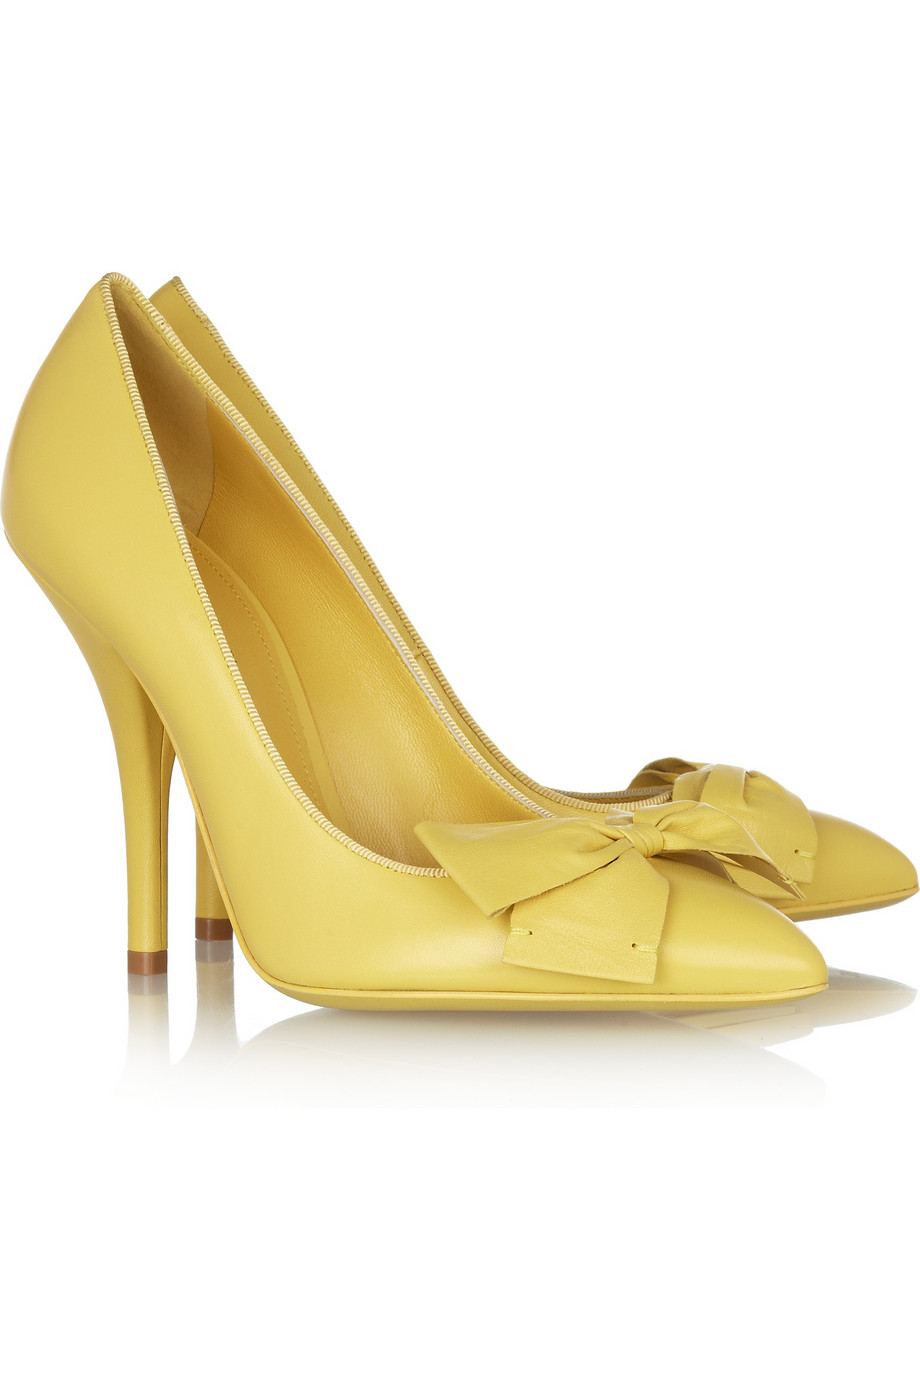 Shoeniverse: Bow front leather pumps in yellow by Bottega Veneta